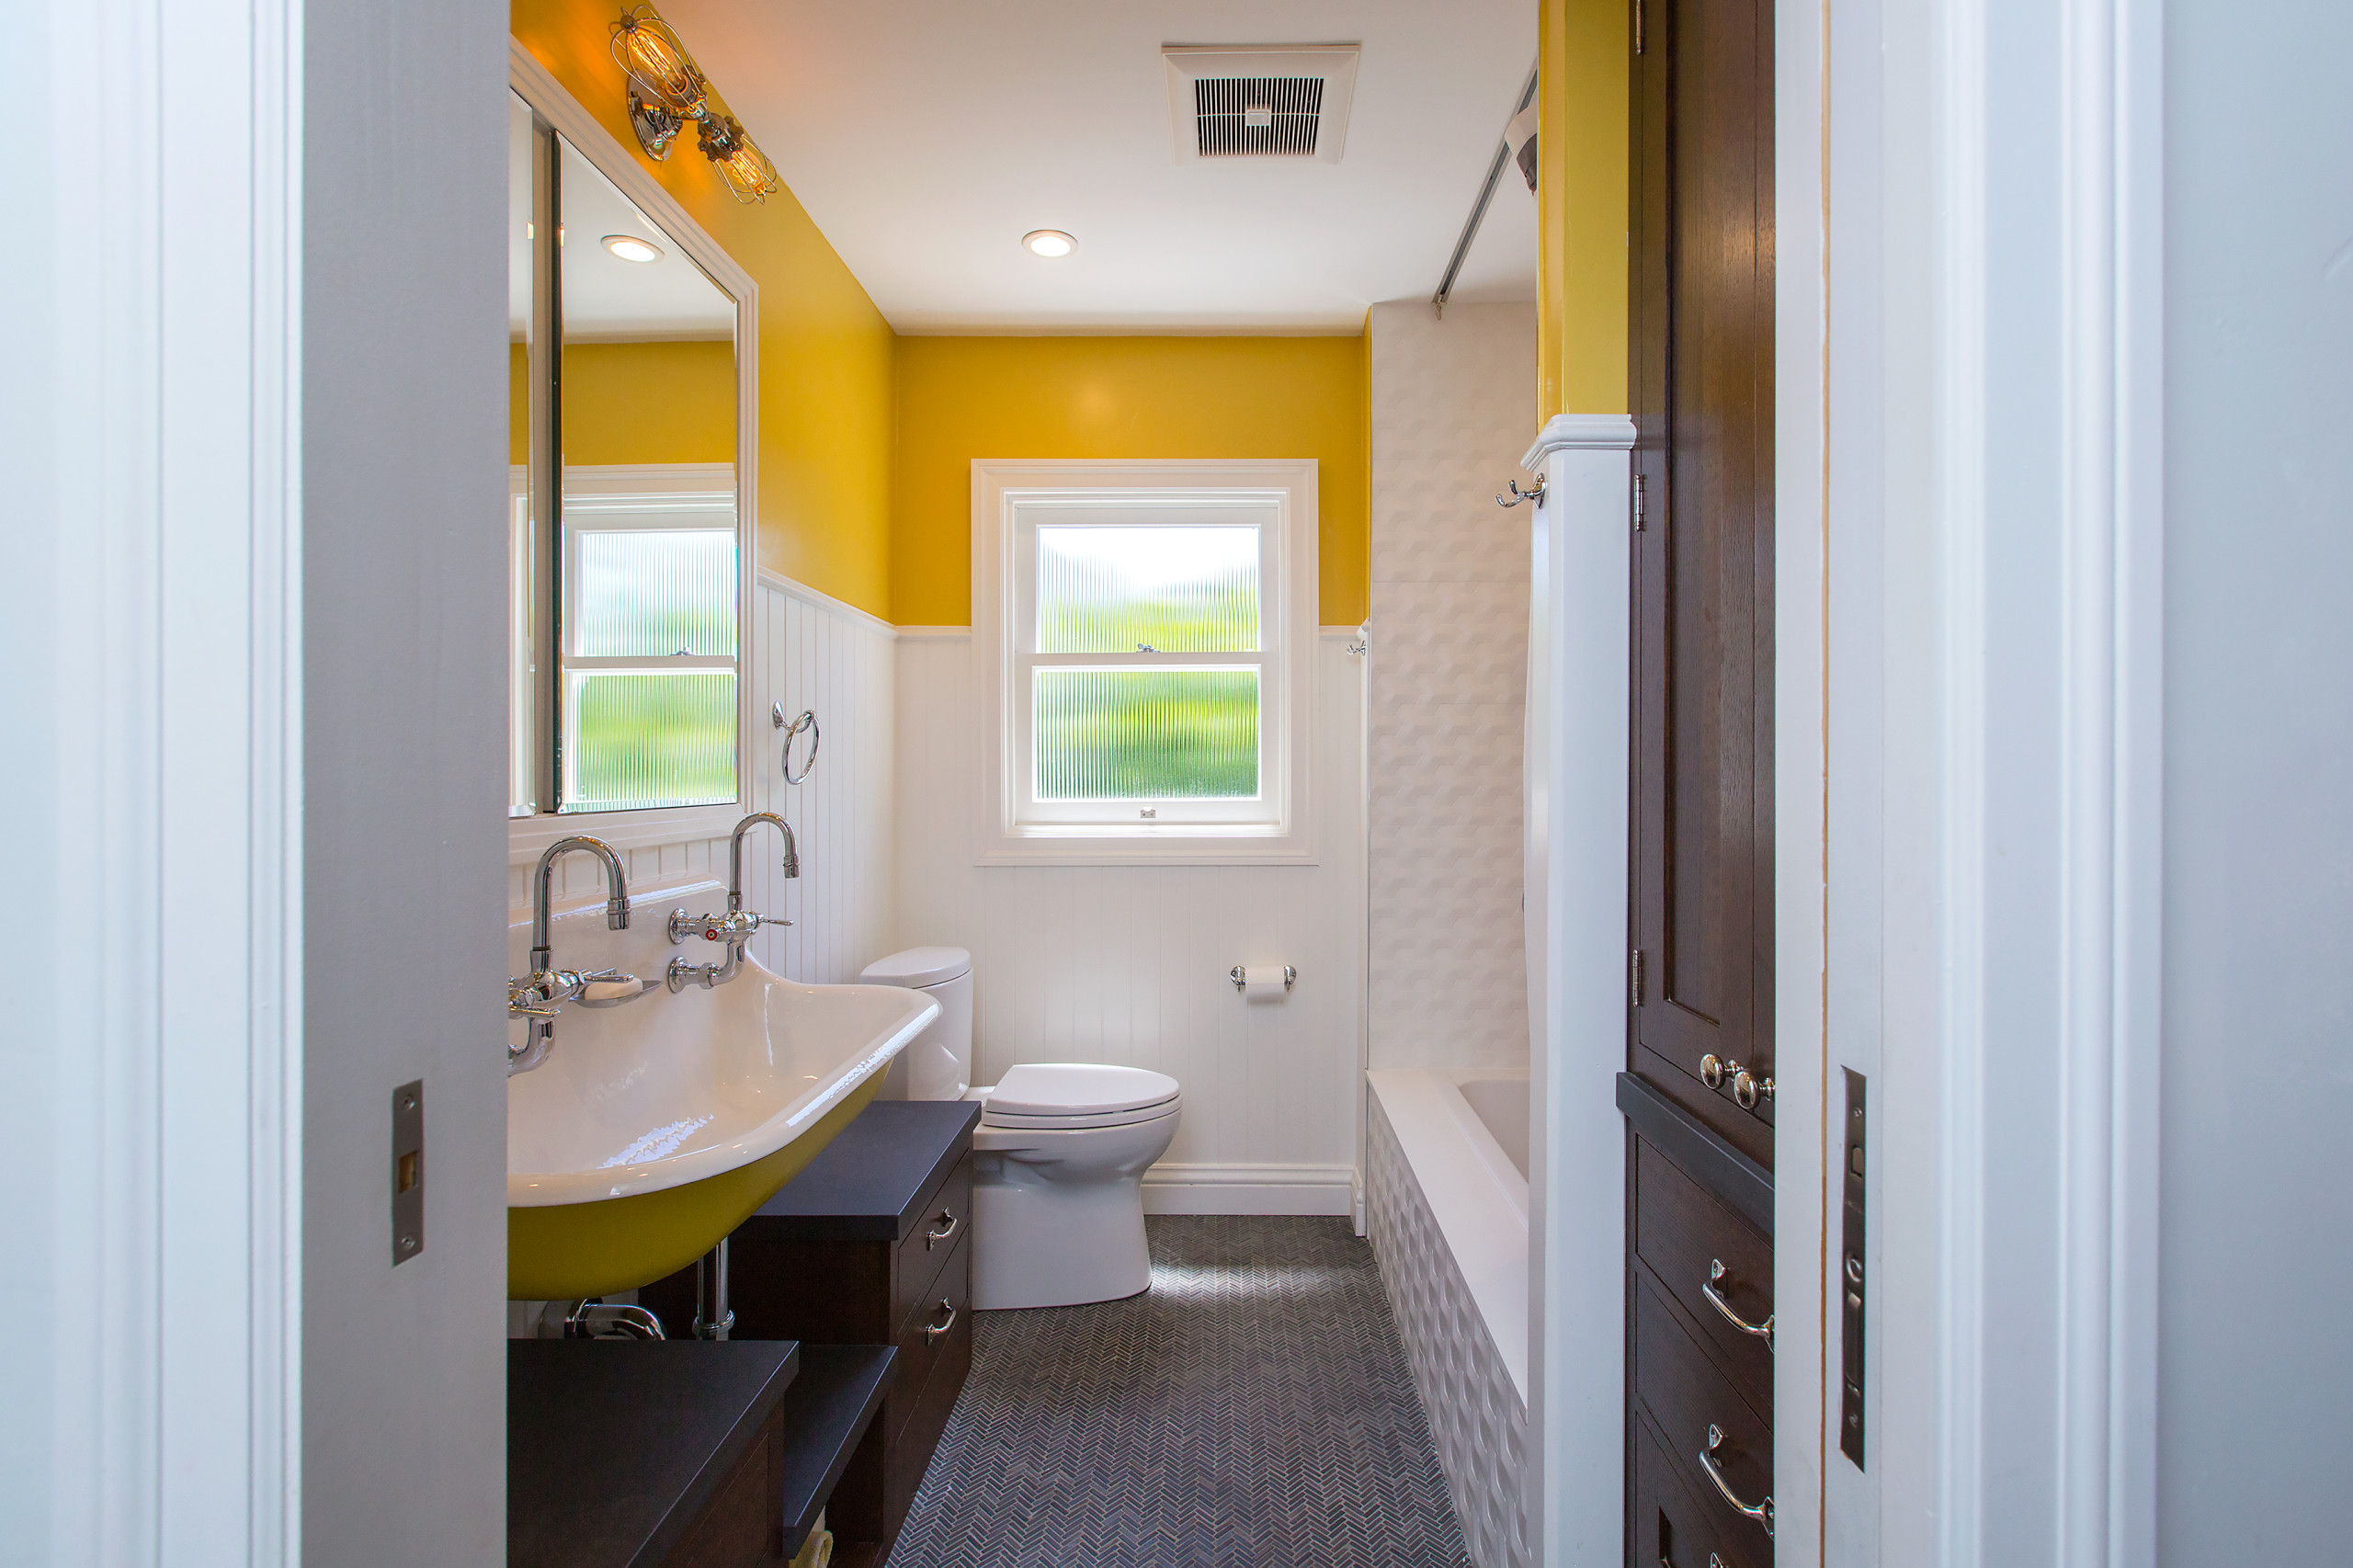 75 Beautiful Bathroom With Yellow Walls Pictures Ideas January 2021 Houzz